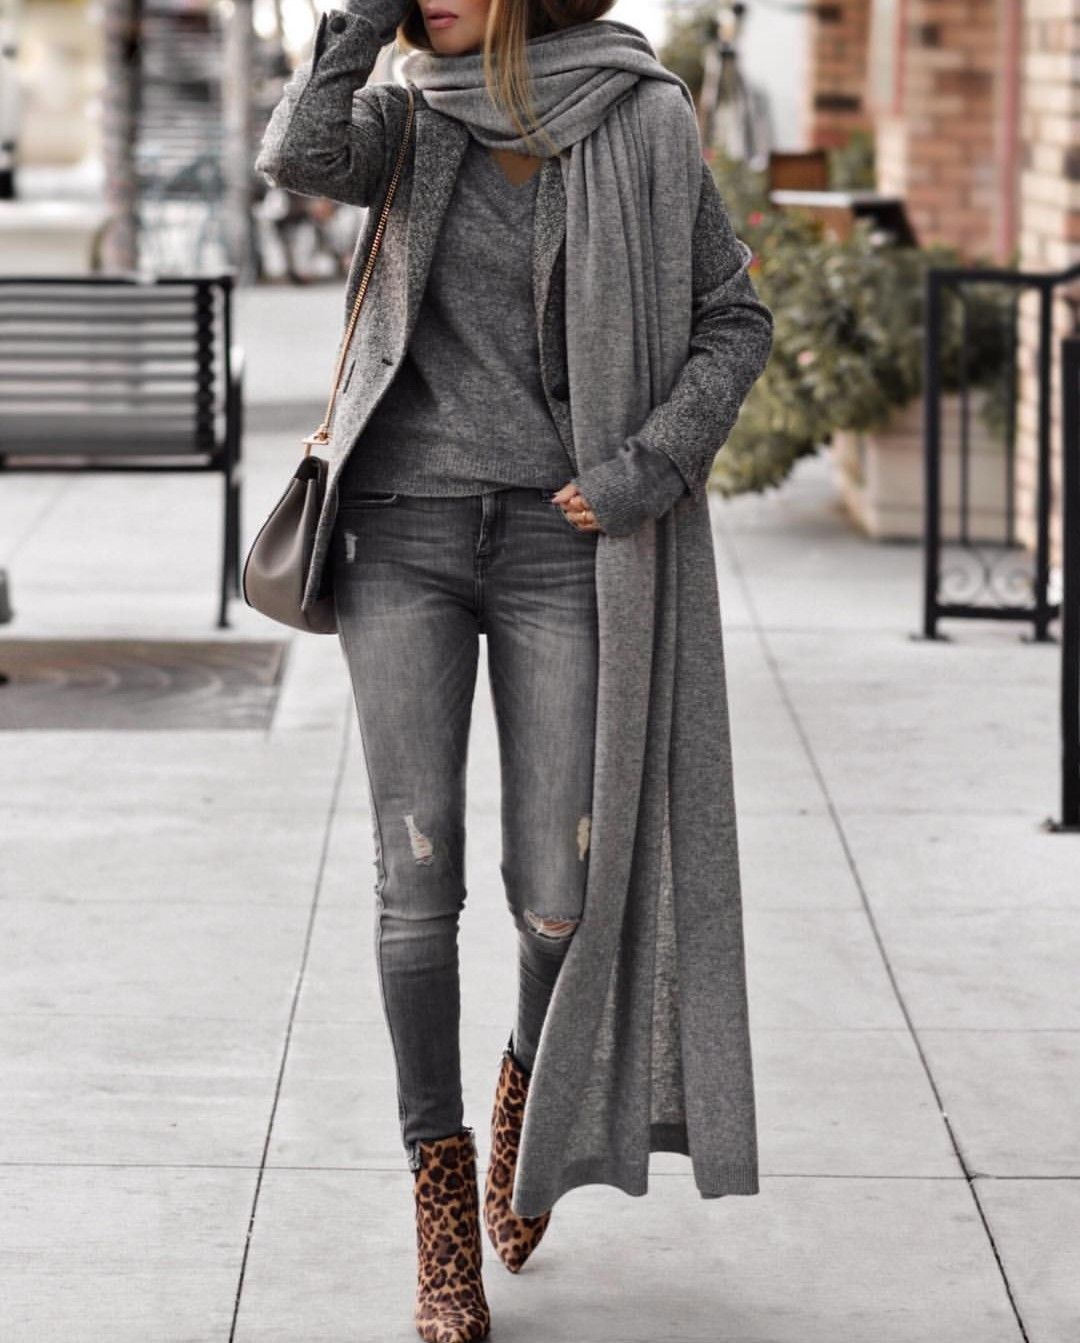 Lang grijs vest outfit #fashion #greyoutfit #ideas #outfitideas #mode #moda #ideeën #outfitideeen #modetrends #classy #style #jeansandboots